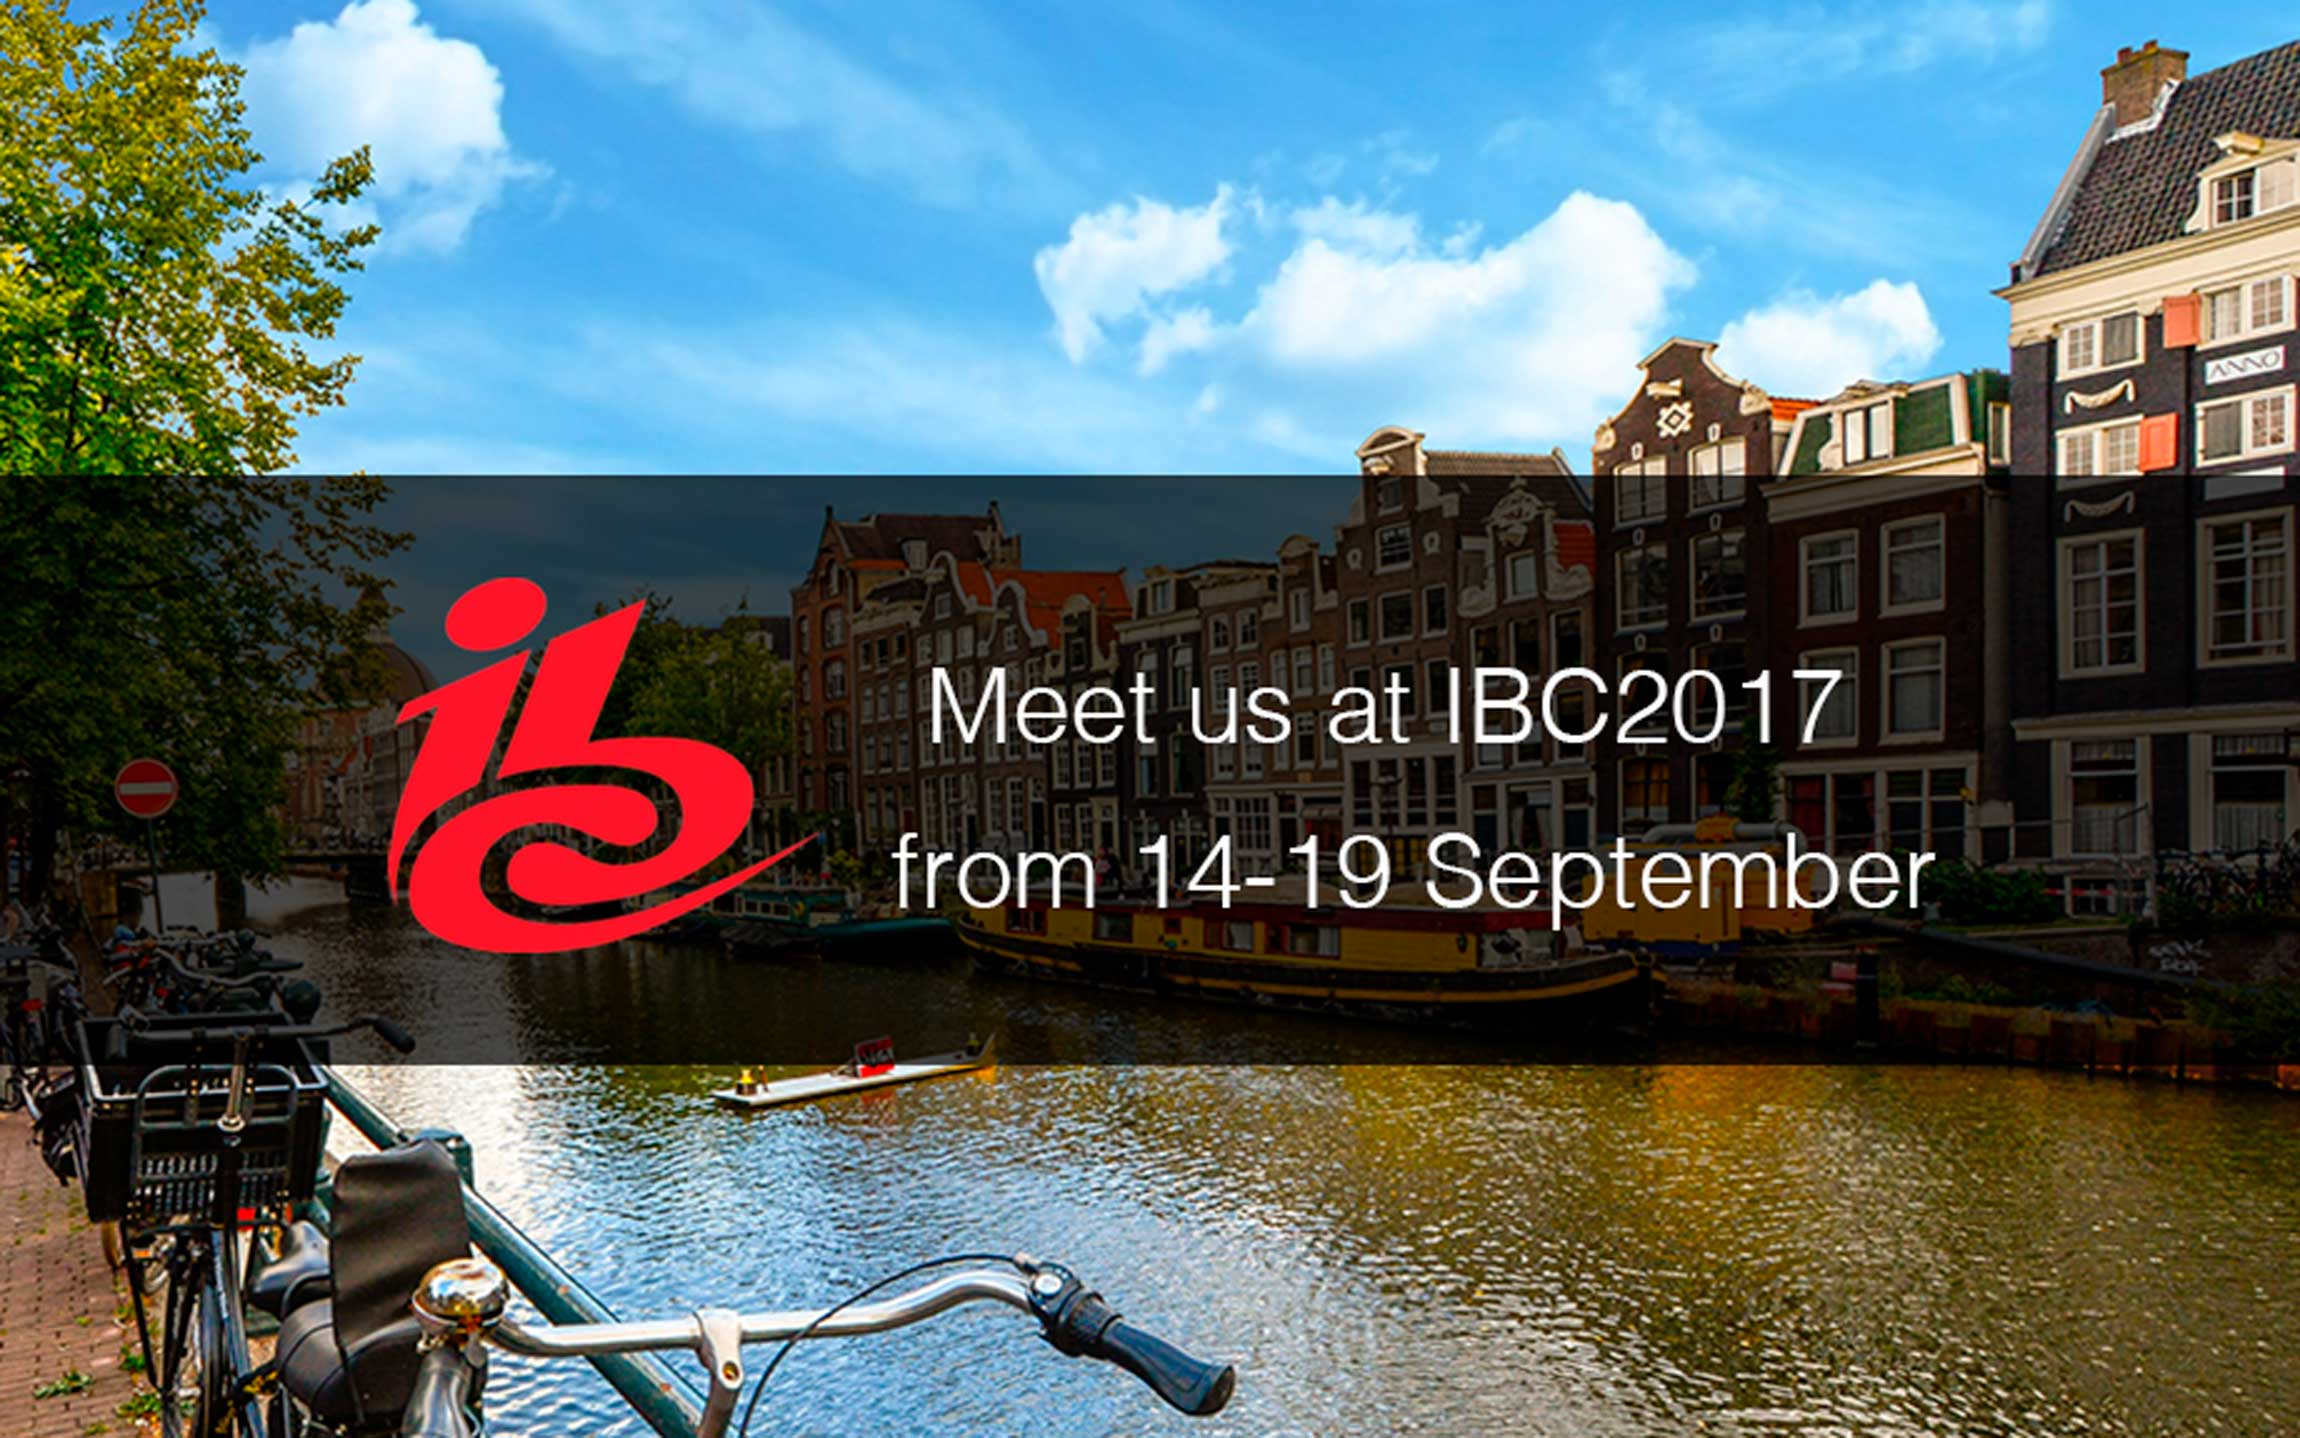 Your content can be present in Amsterdam too. We have been selected for IBC 2017 Startup Forum!